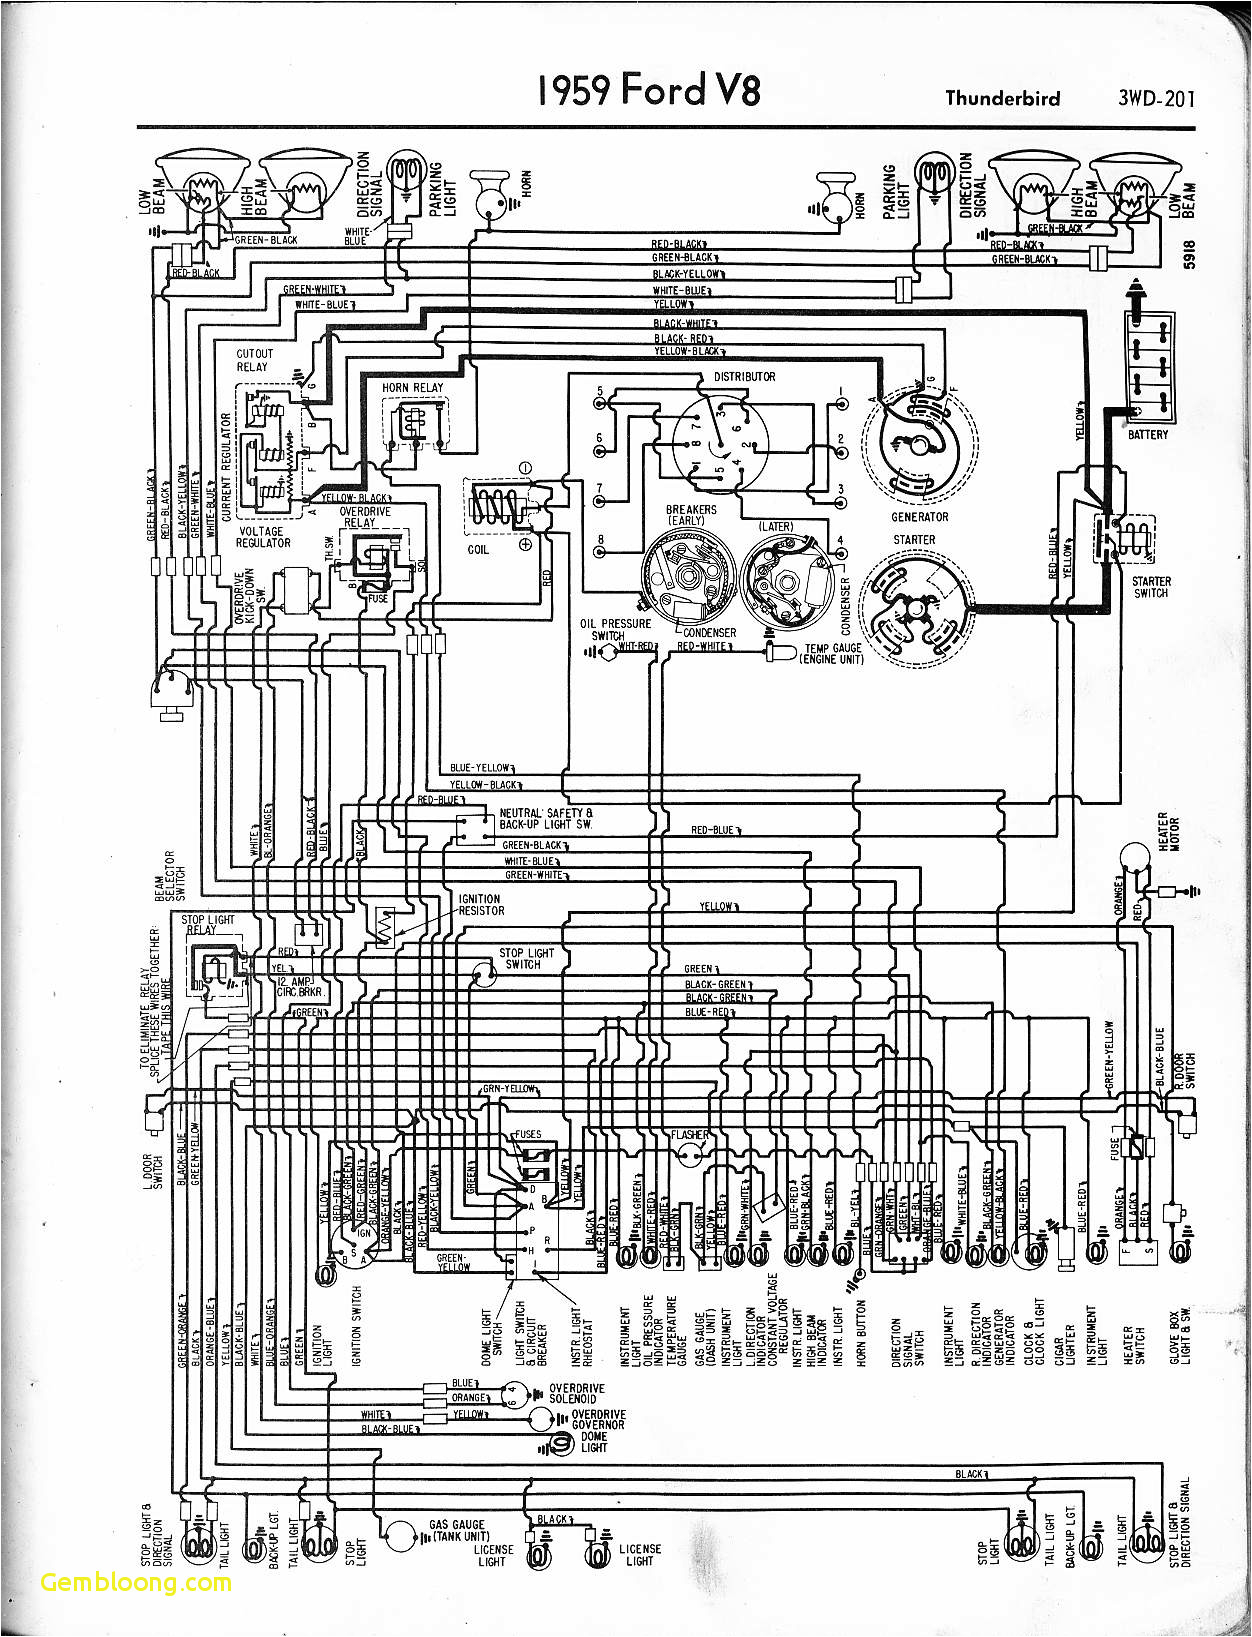 download ford trucks wiring diagrams ford f150 wiring diagrams best volvo s40 2 0d engine diagram free of ford trucks wiring diagrams 1 jpg